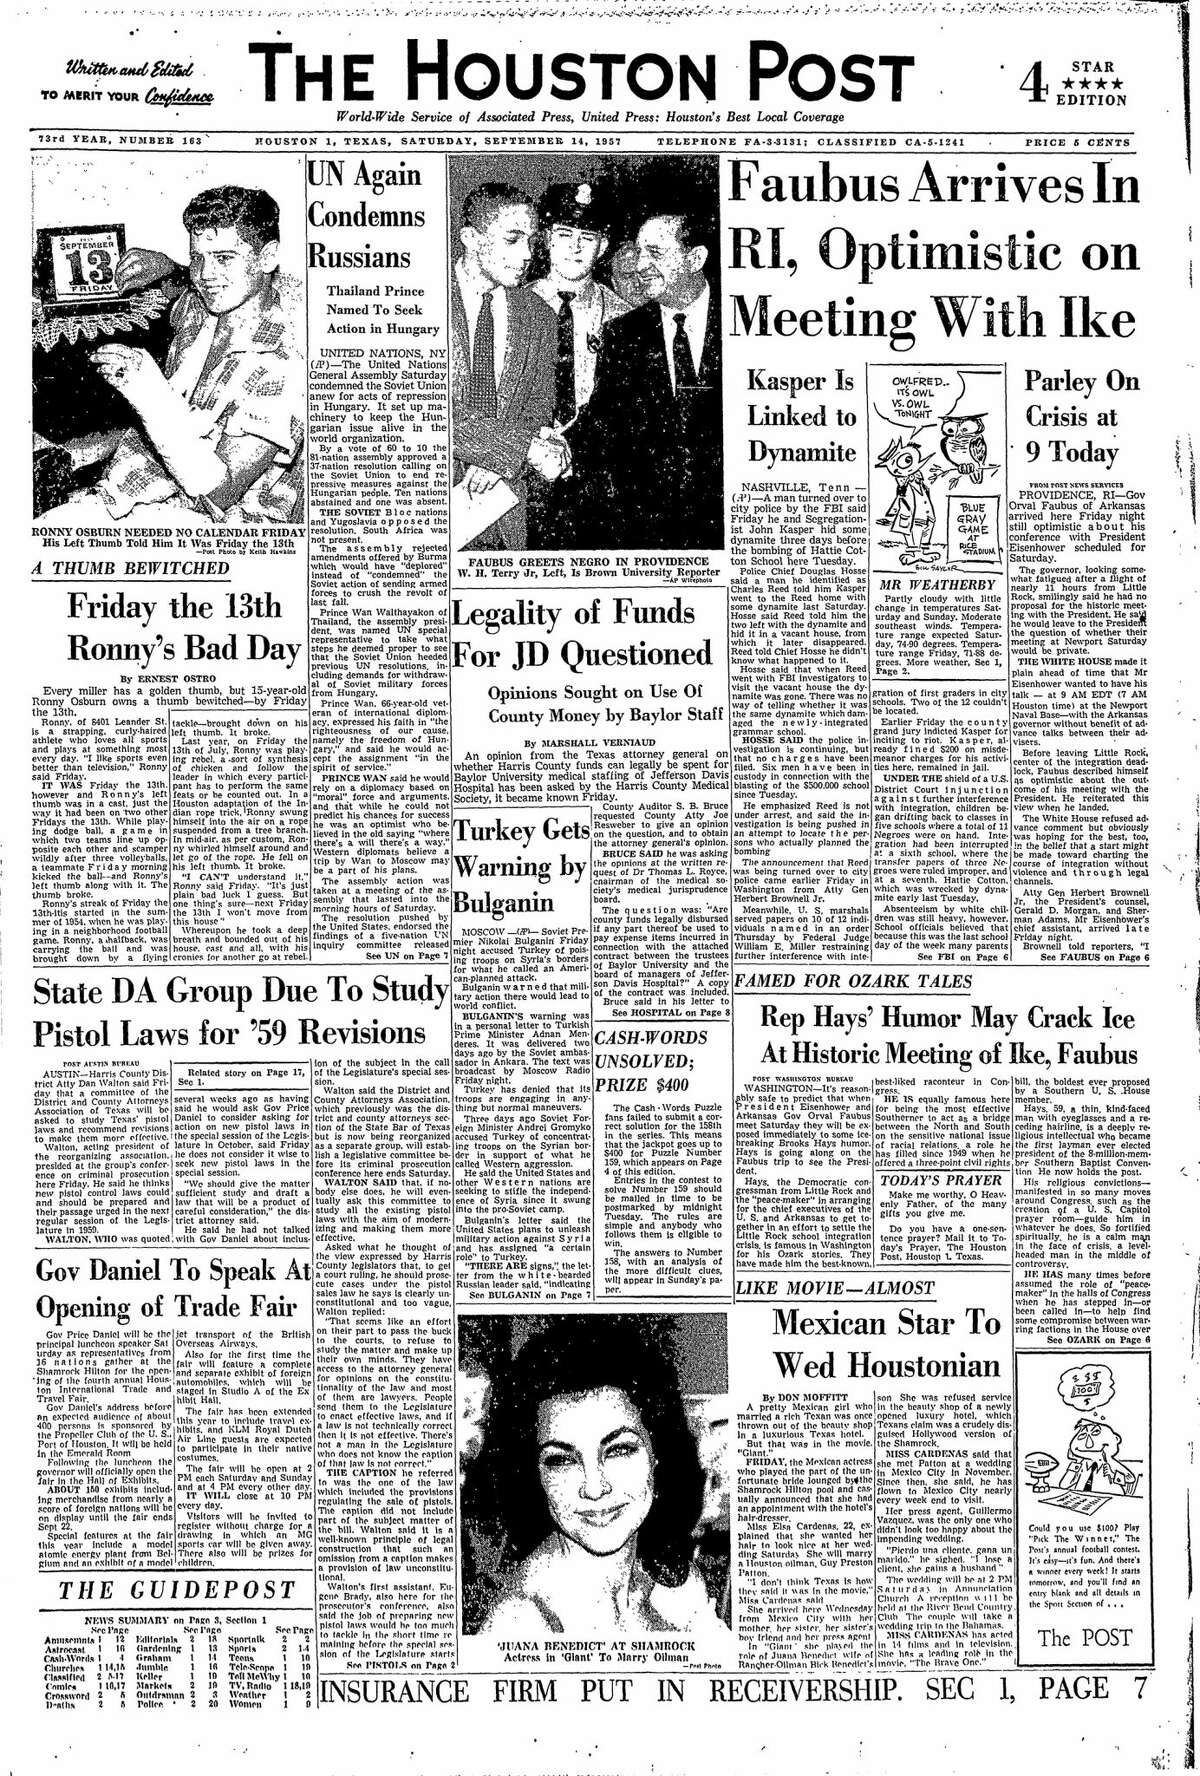 Houston Chronicle front page from Sept. 14, 1957.